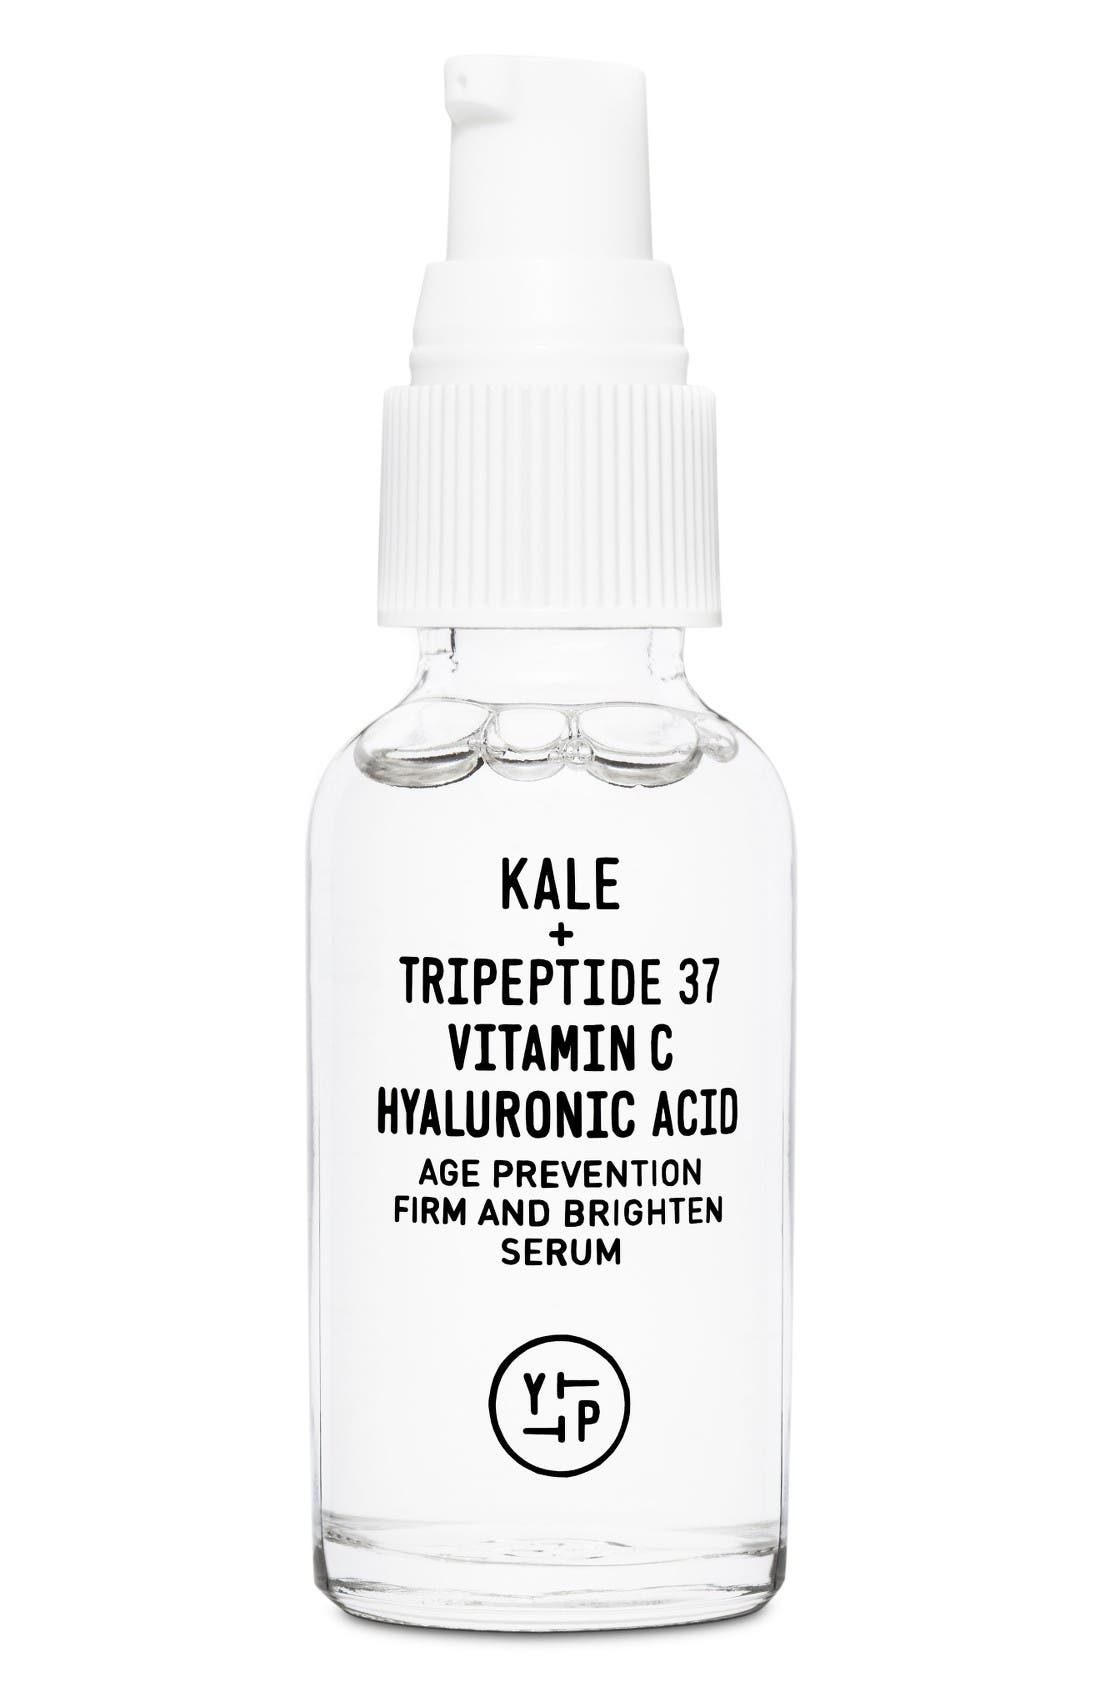 Youth to the People Kale + TriPeptide 37 Vitamin C Age Prevention Firm and Brighten Serum